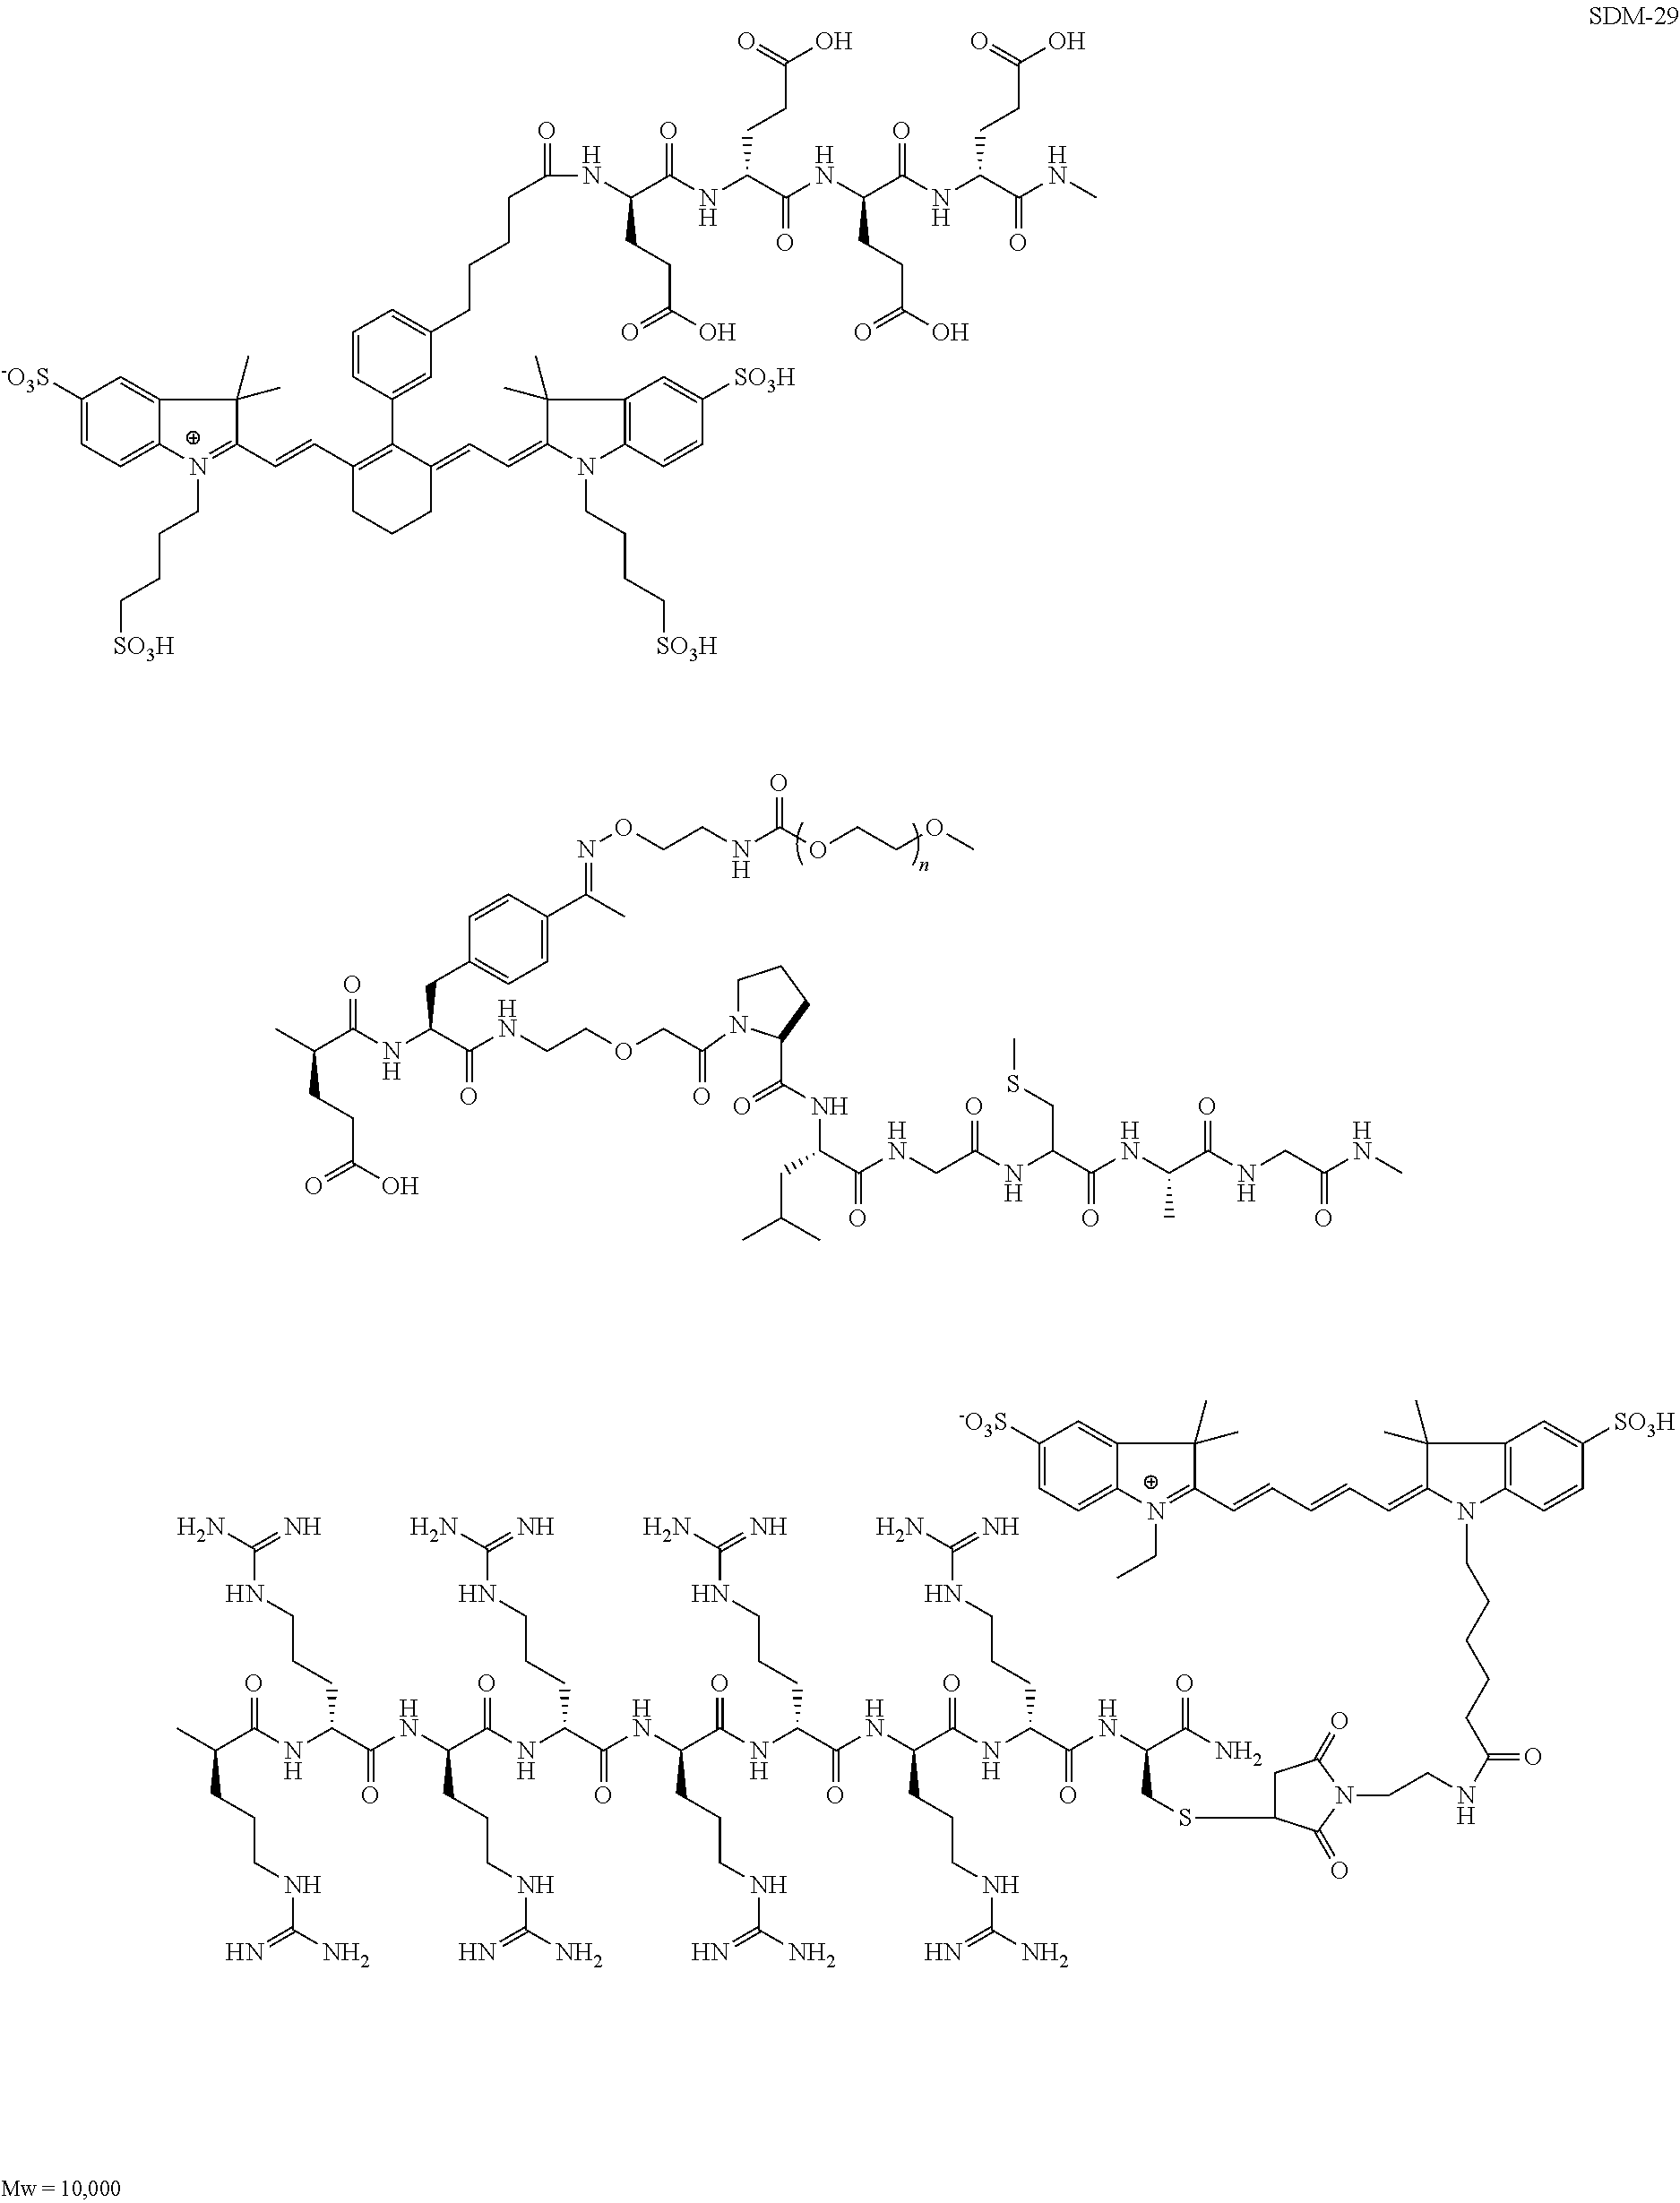 us9504763b2 selective delivery molecules and methods of use New Lincoln MKS figure us09504763 20161129 c00029